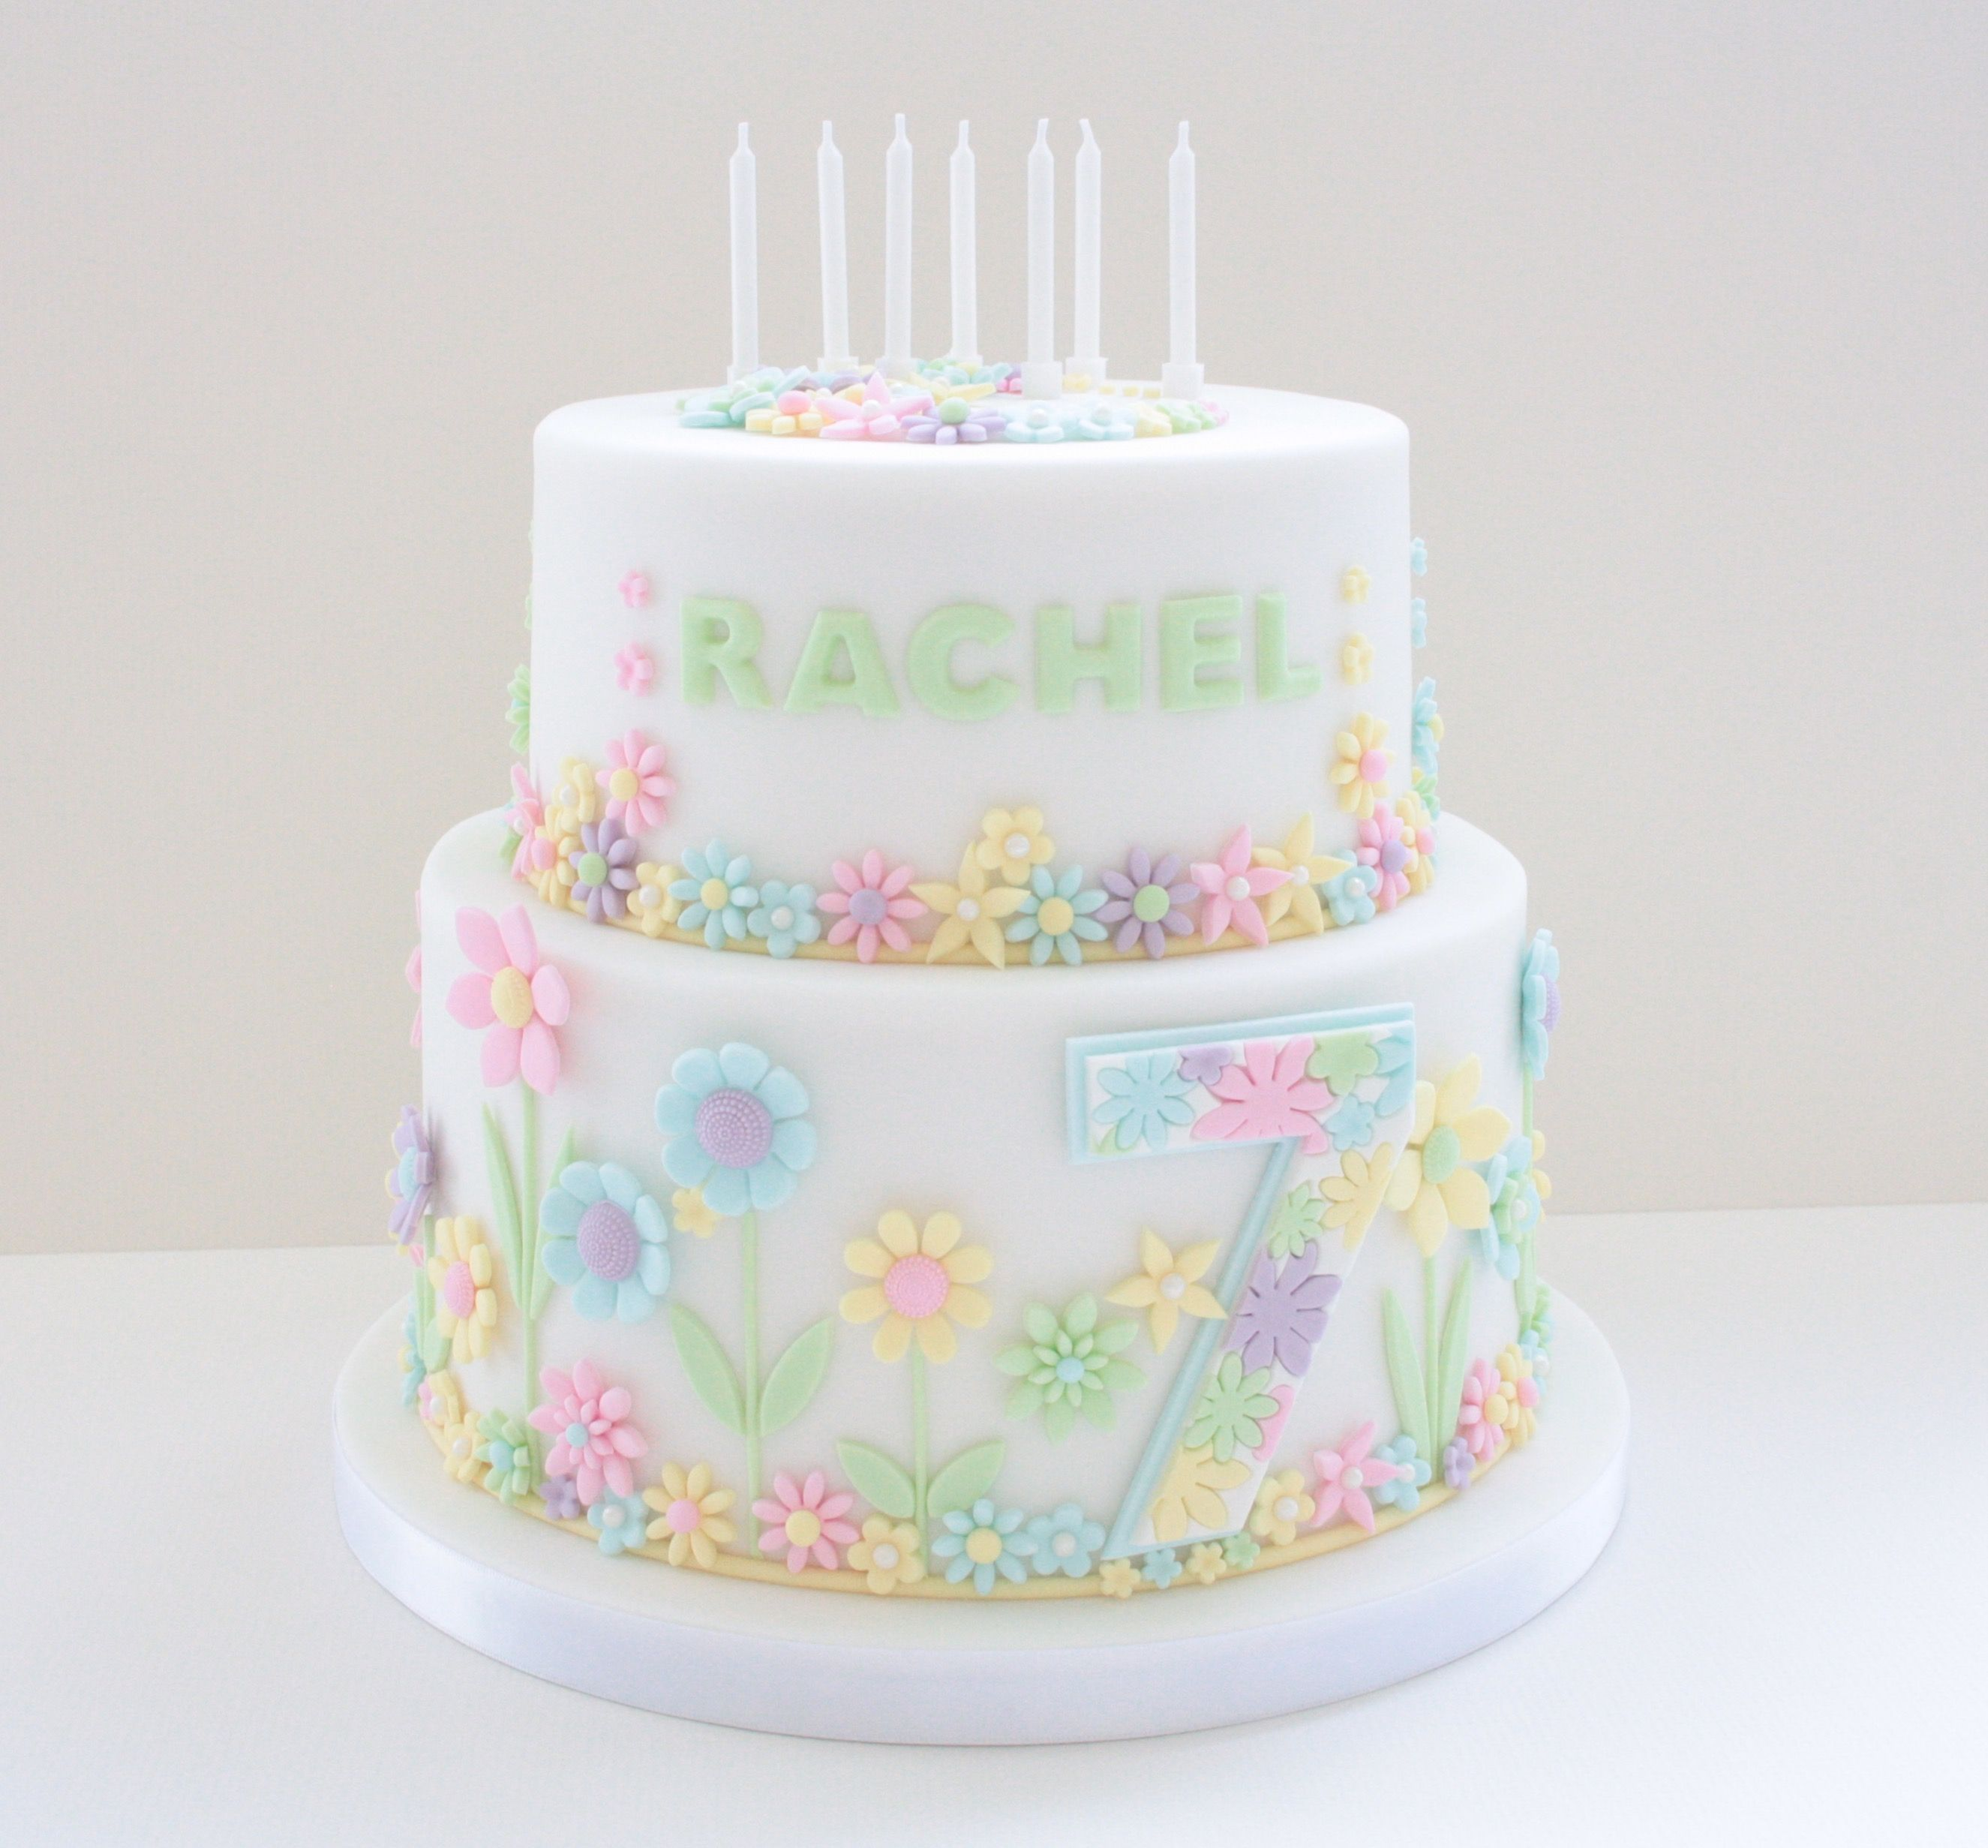 7th Birthday Cake For My Daughter Simple Design With Cut Out